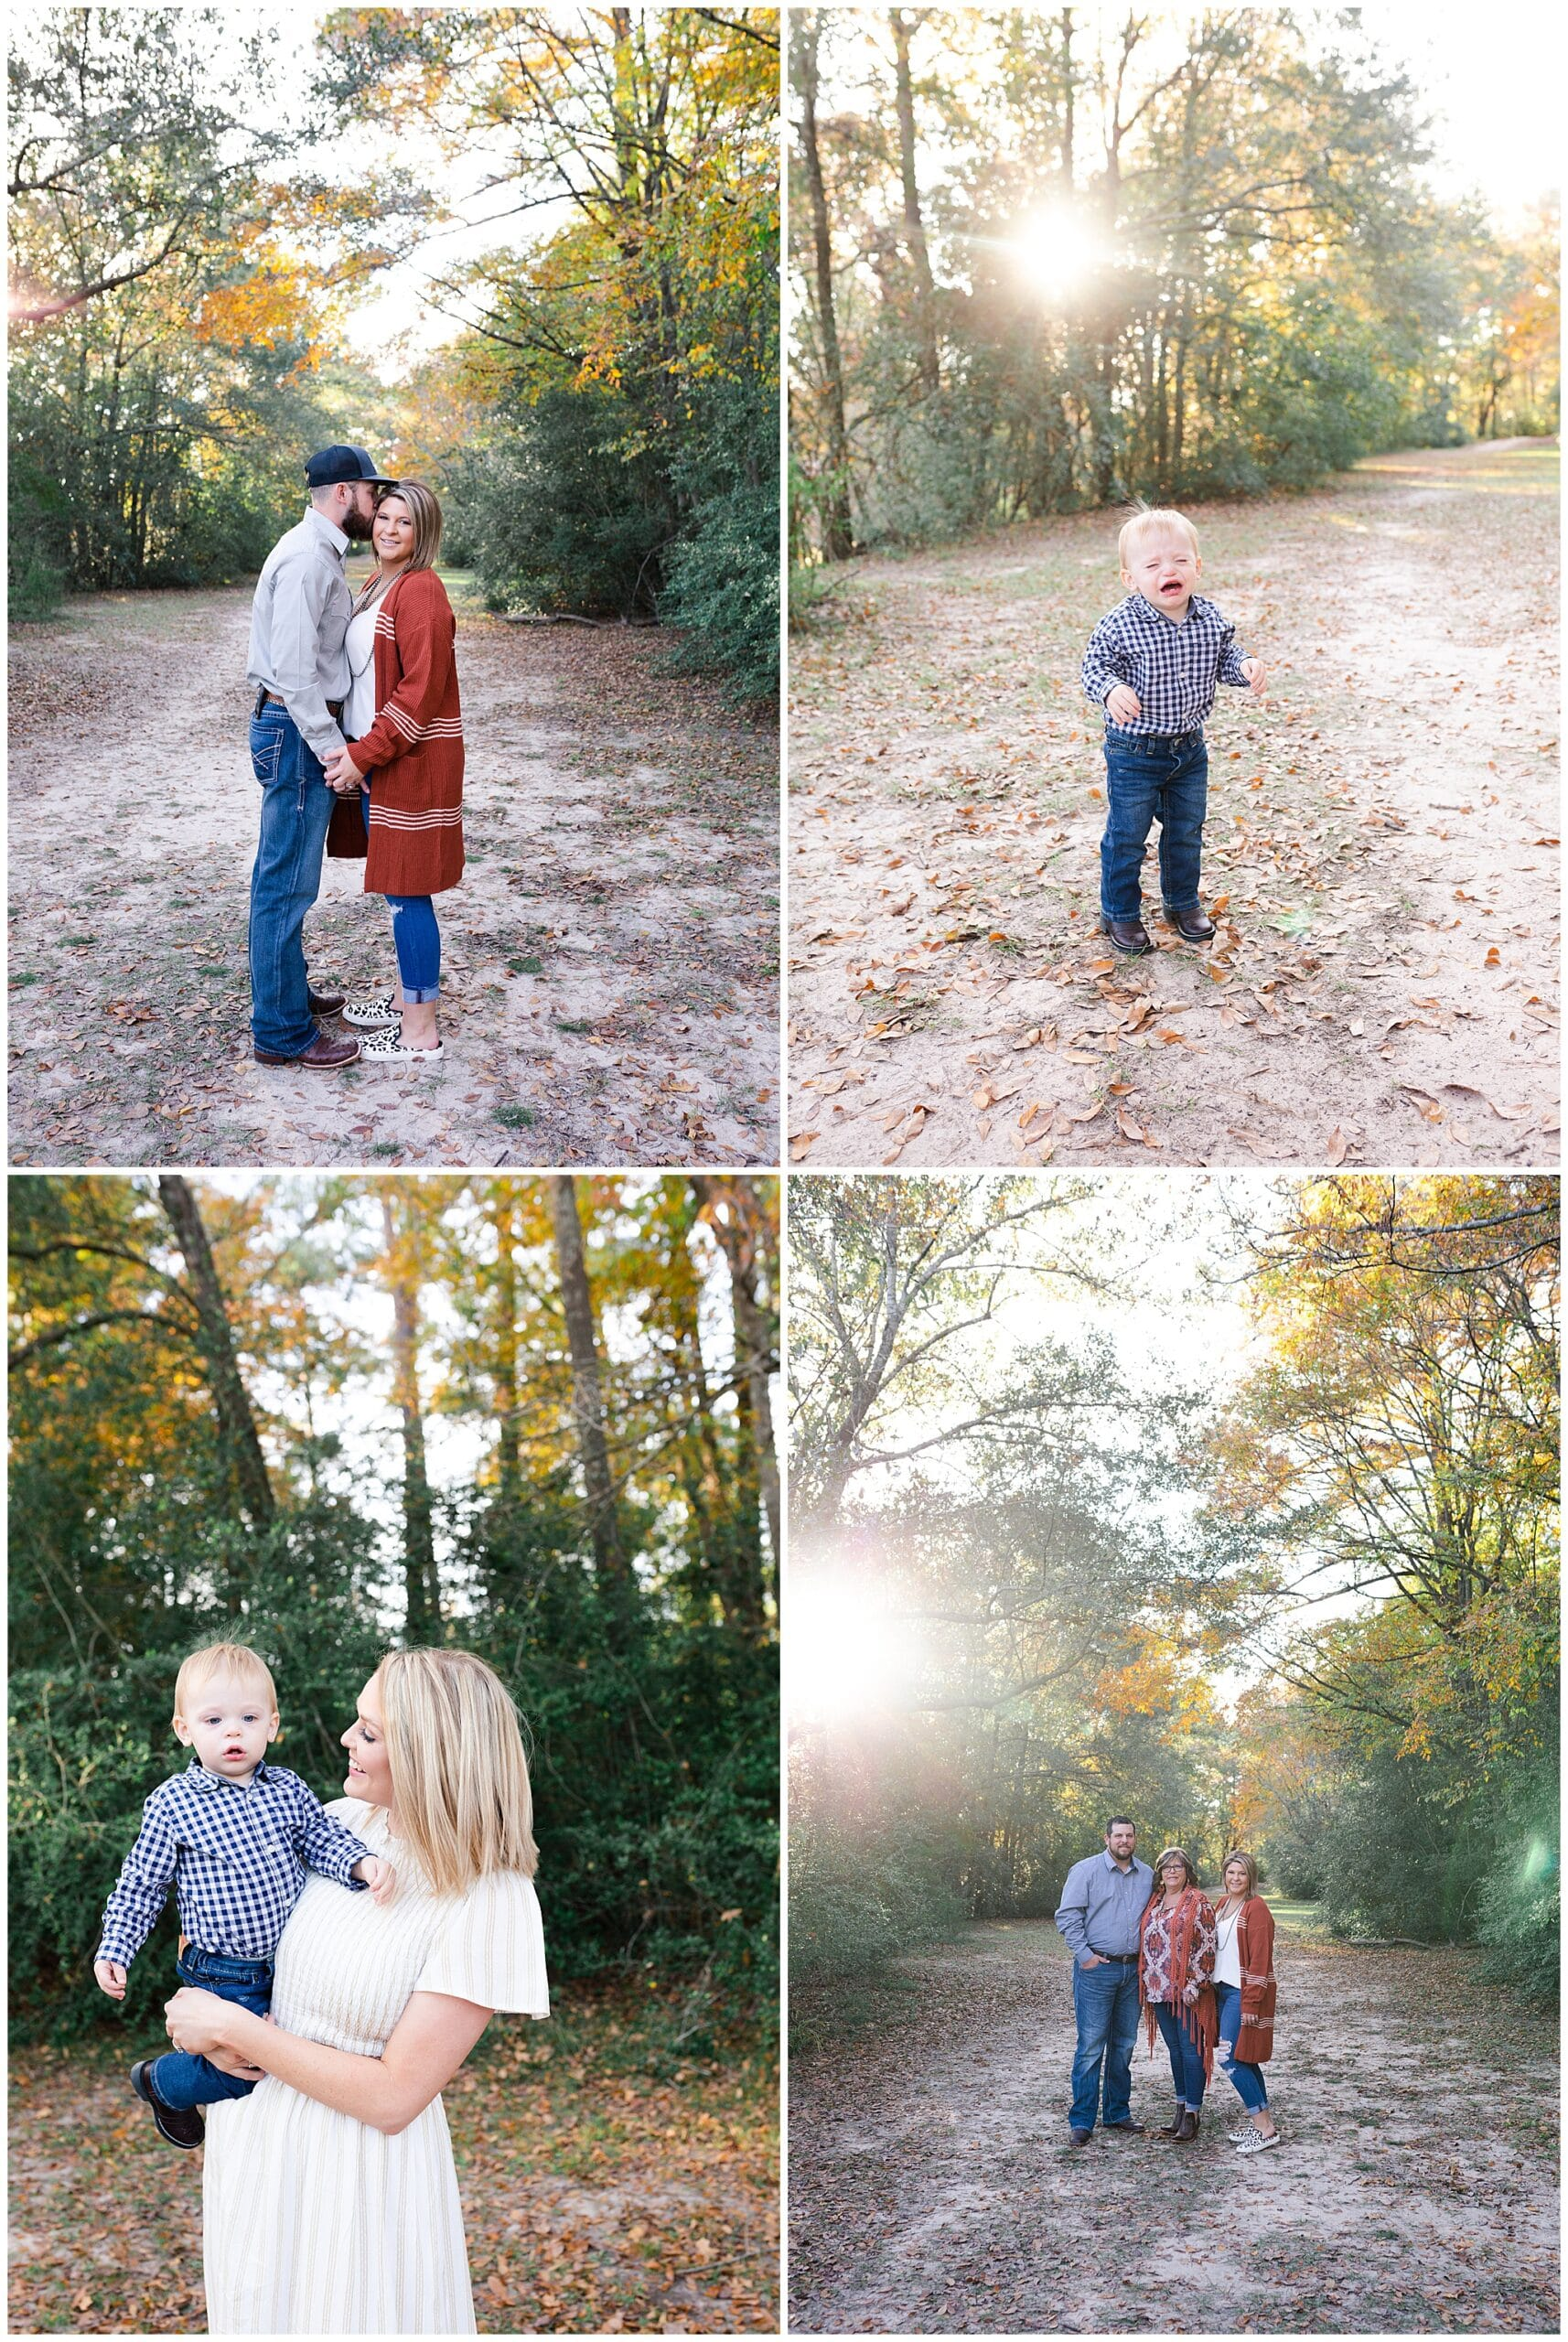 cute family getting portraits taken at Kickerillo-Mischer Preserve by Swish and Click Photography